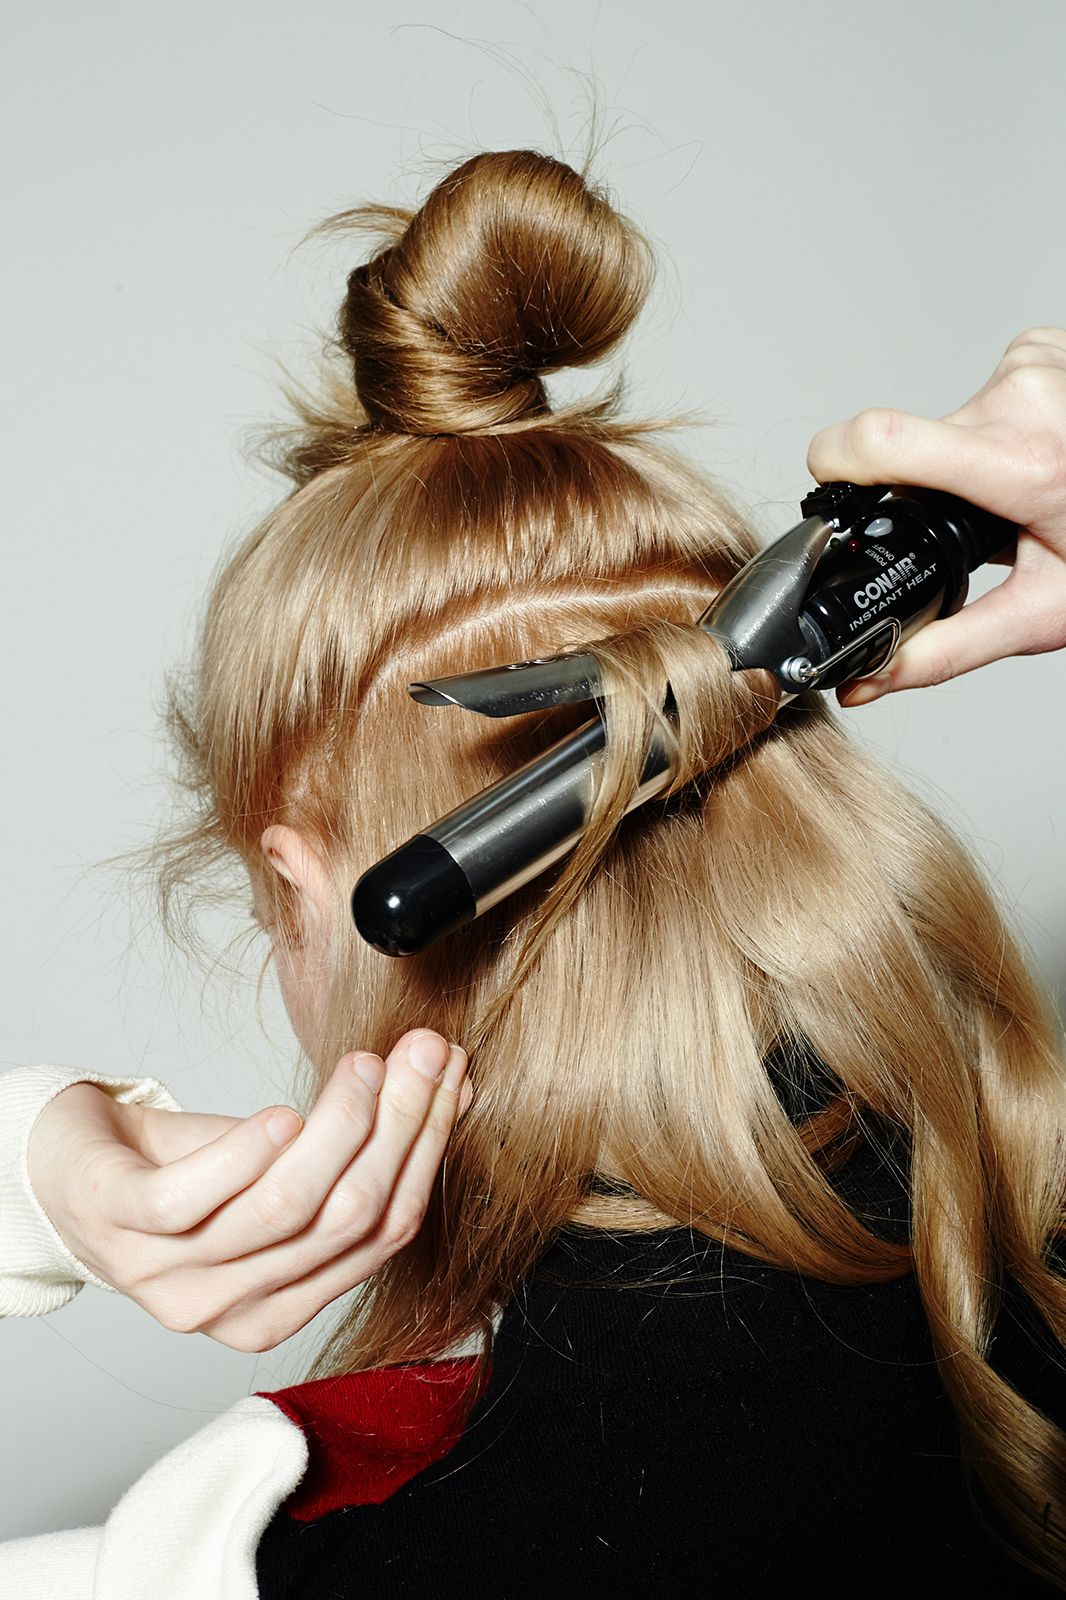 Curling iron hairstyles curly hairstyle guide curling